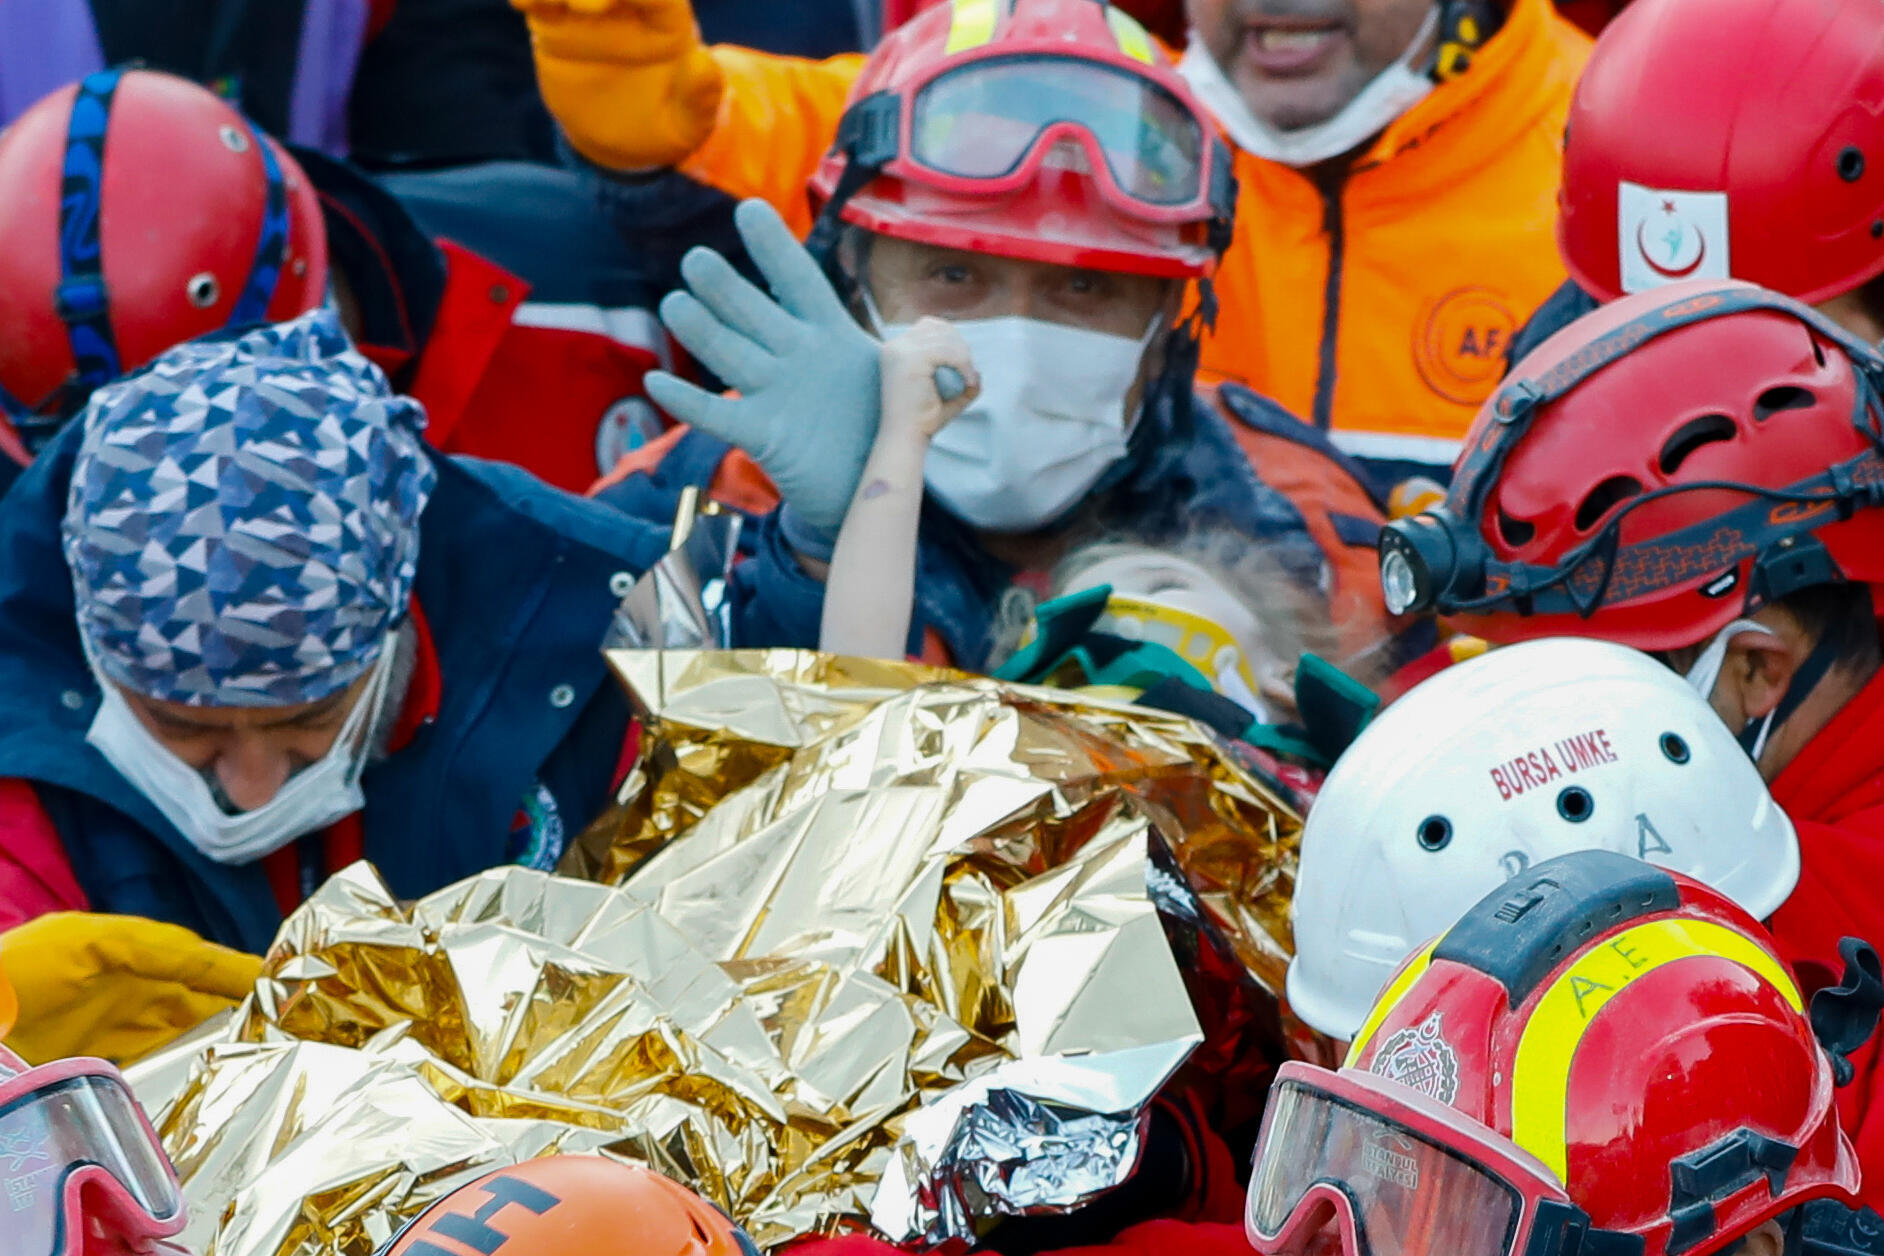 A handout picture from the Istanbul fire department shows Elif Perincek, 3, being carried out of a collapsed building after an earthquake in the Aegean port city of Izmir